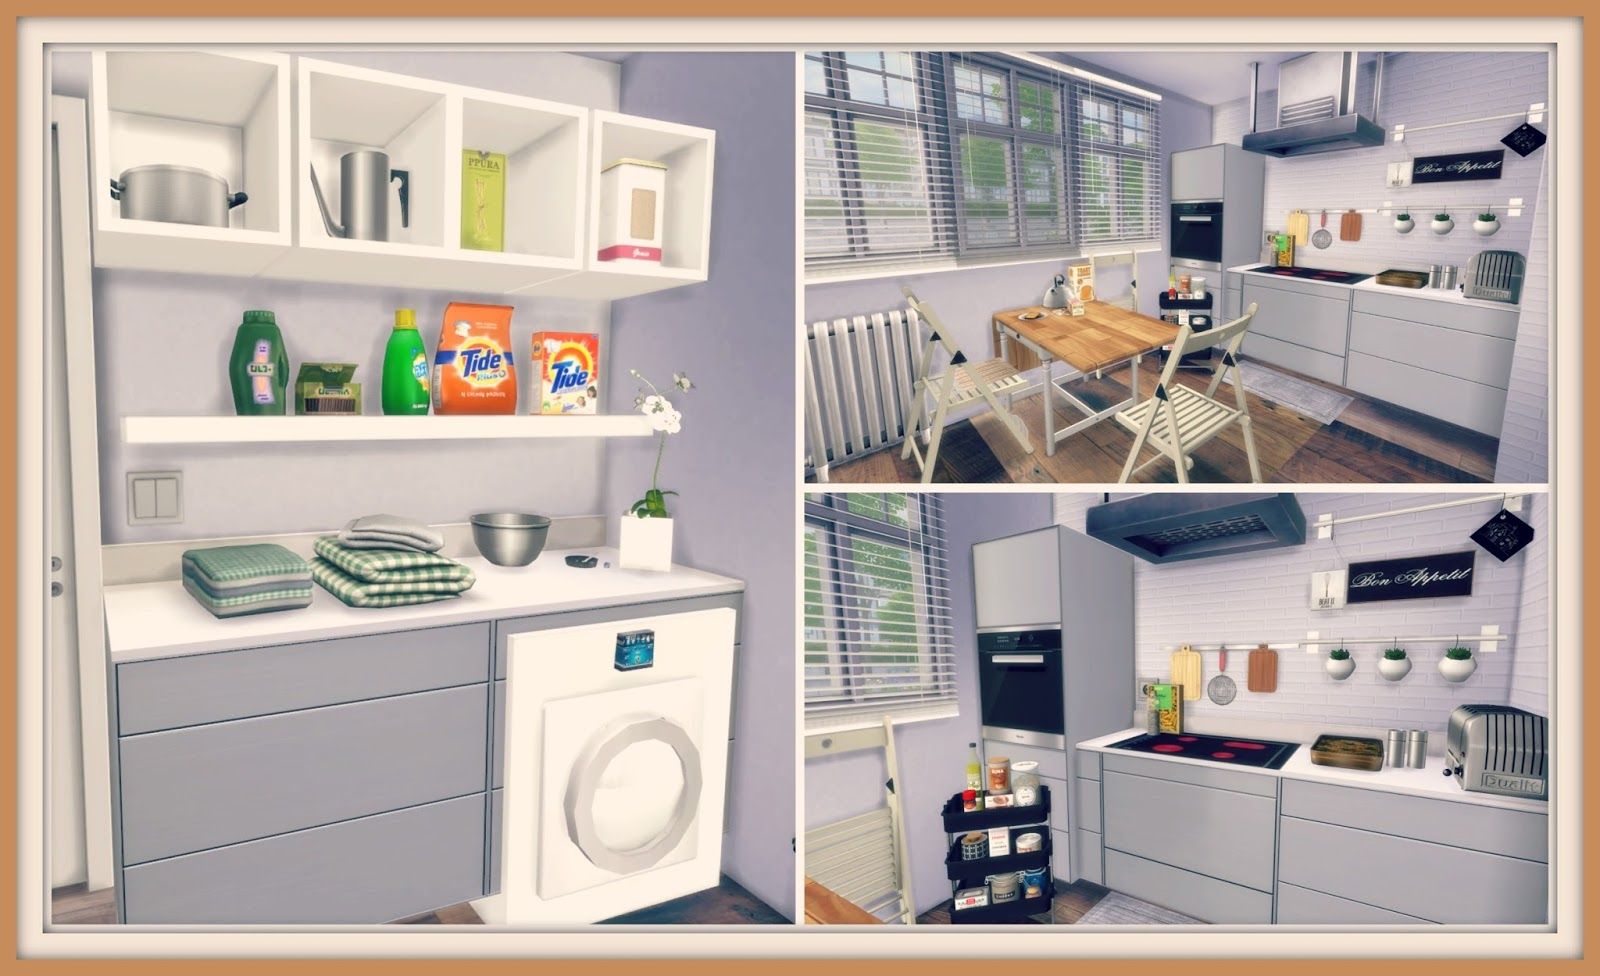 Gamer Home Decor Sims 4 White Kitchen With Laundry Dinha